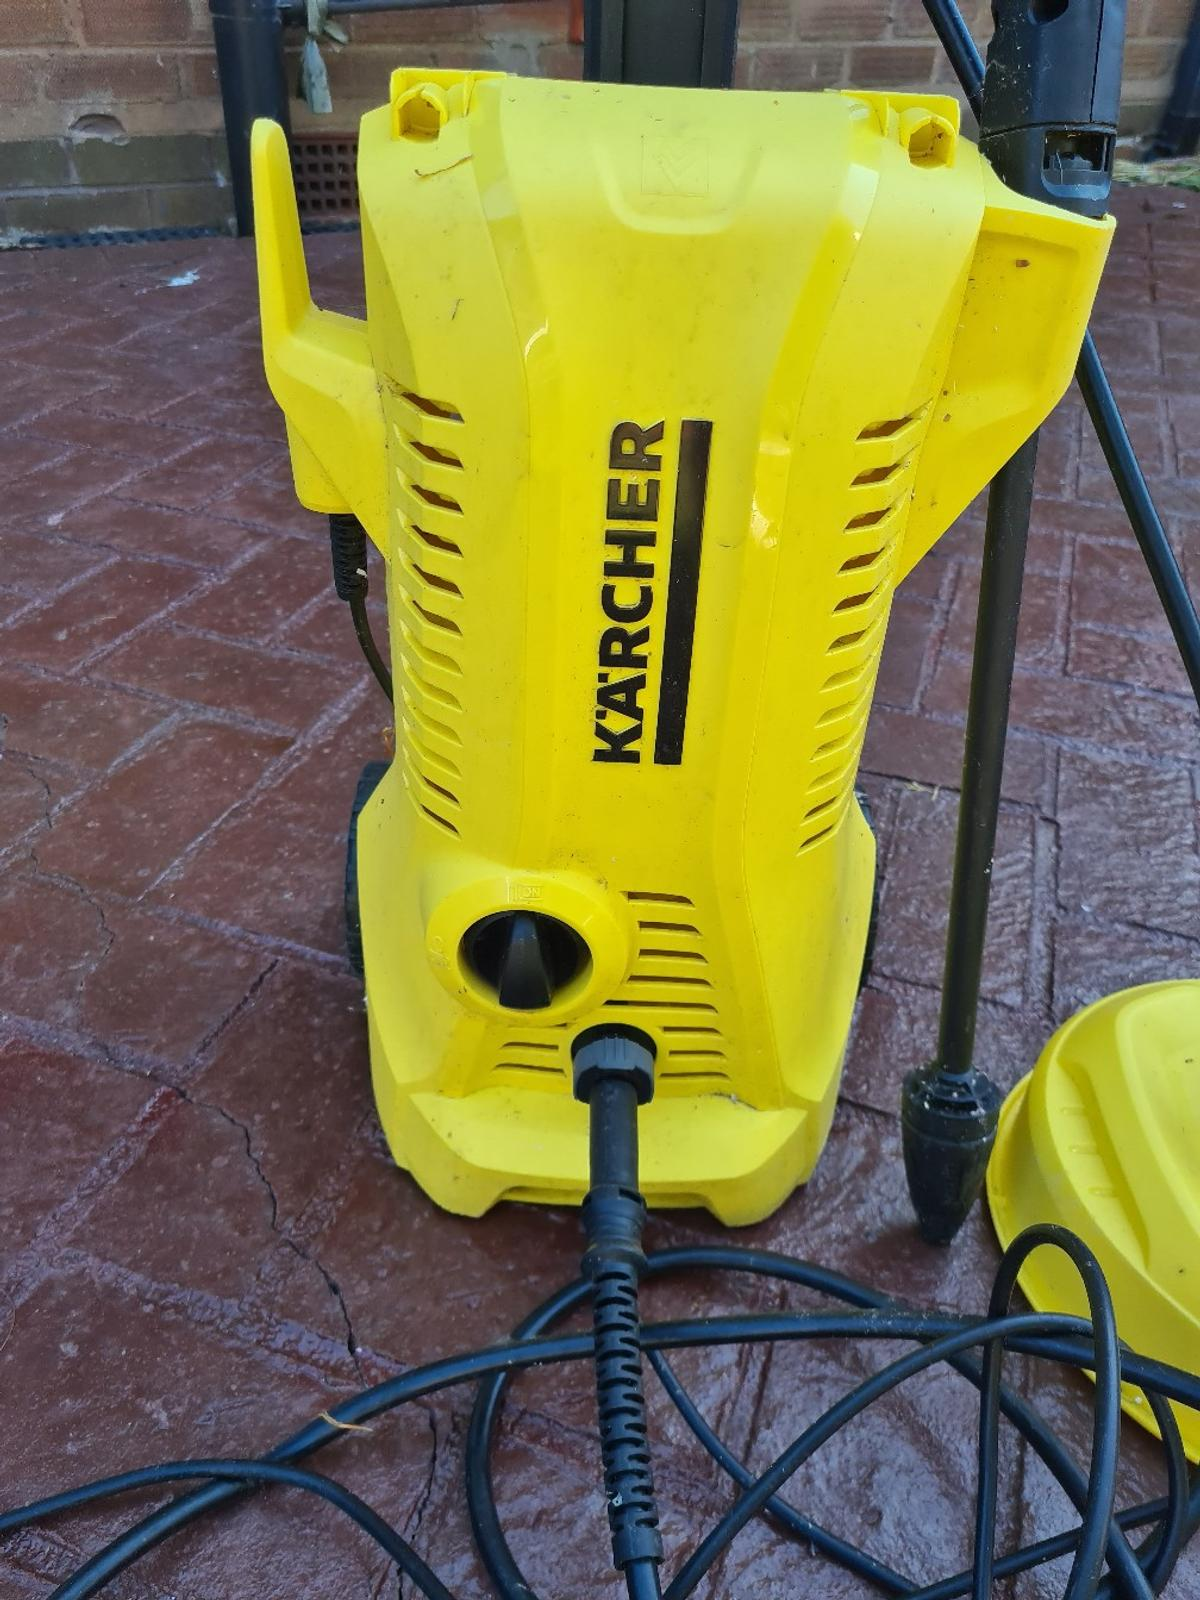 Karcher K2 Pressure Washer in perfect condition.  Used twice as it was a gift but now time to sell it.  Currently selling for £110 in Argos.  Comes with hose adapters which I had to purchase separately.  Contactless collection only